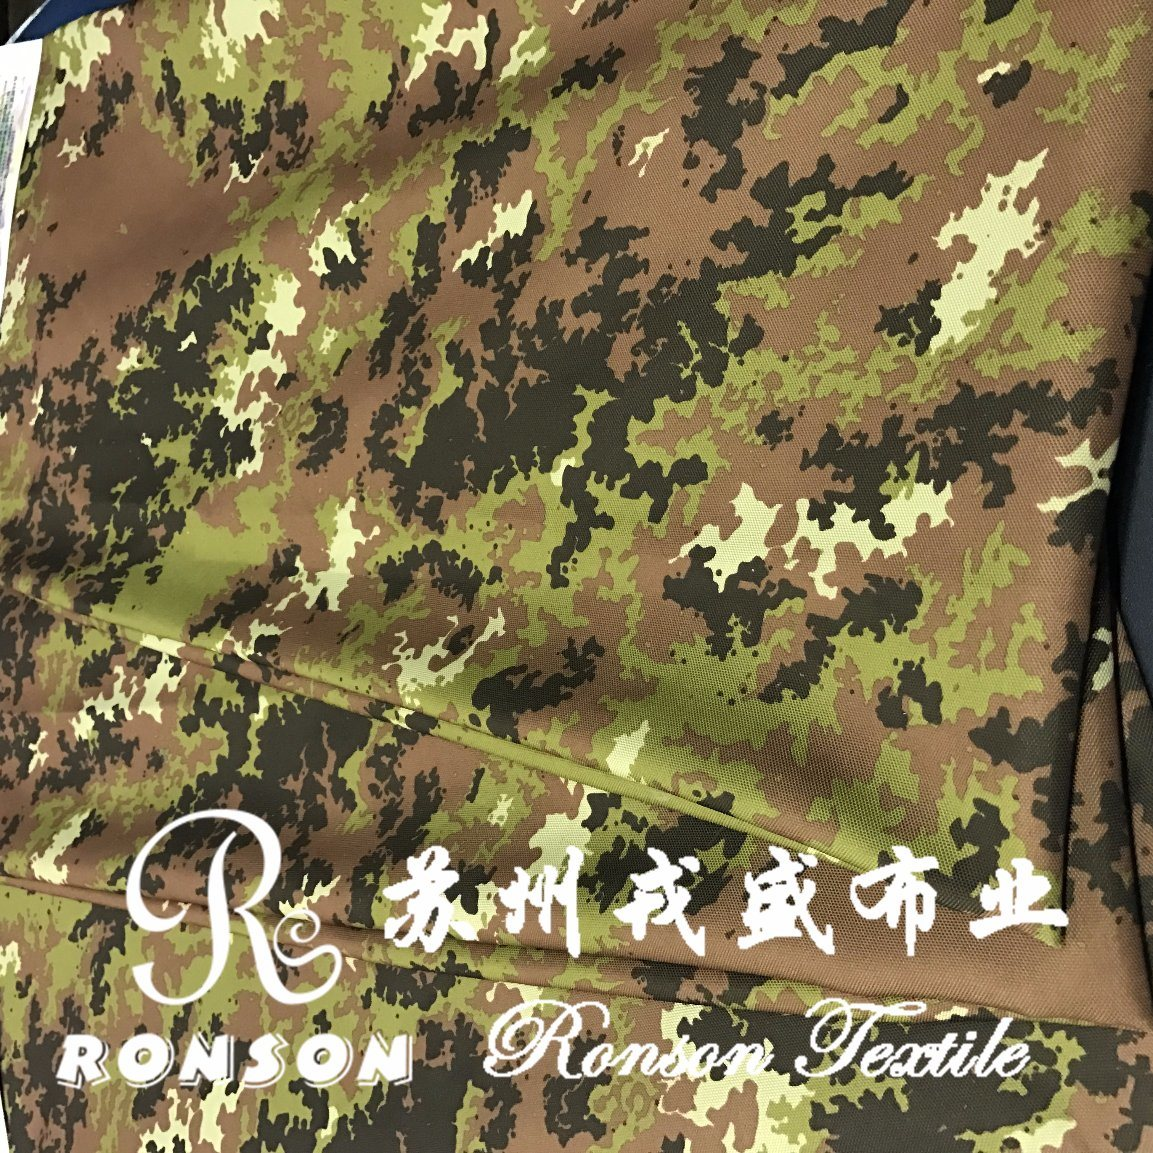 600d 74t Italy Camouflage PU/PVC Coated Oxford Water Repellent Used for Bags